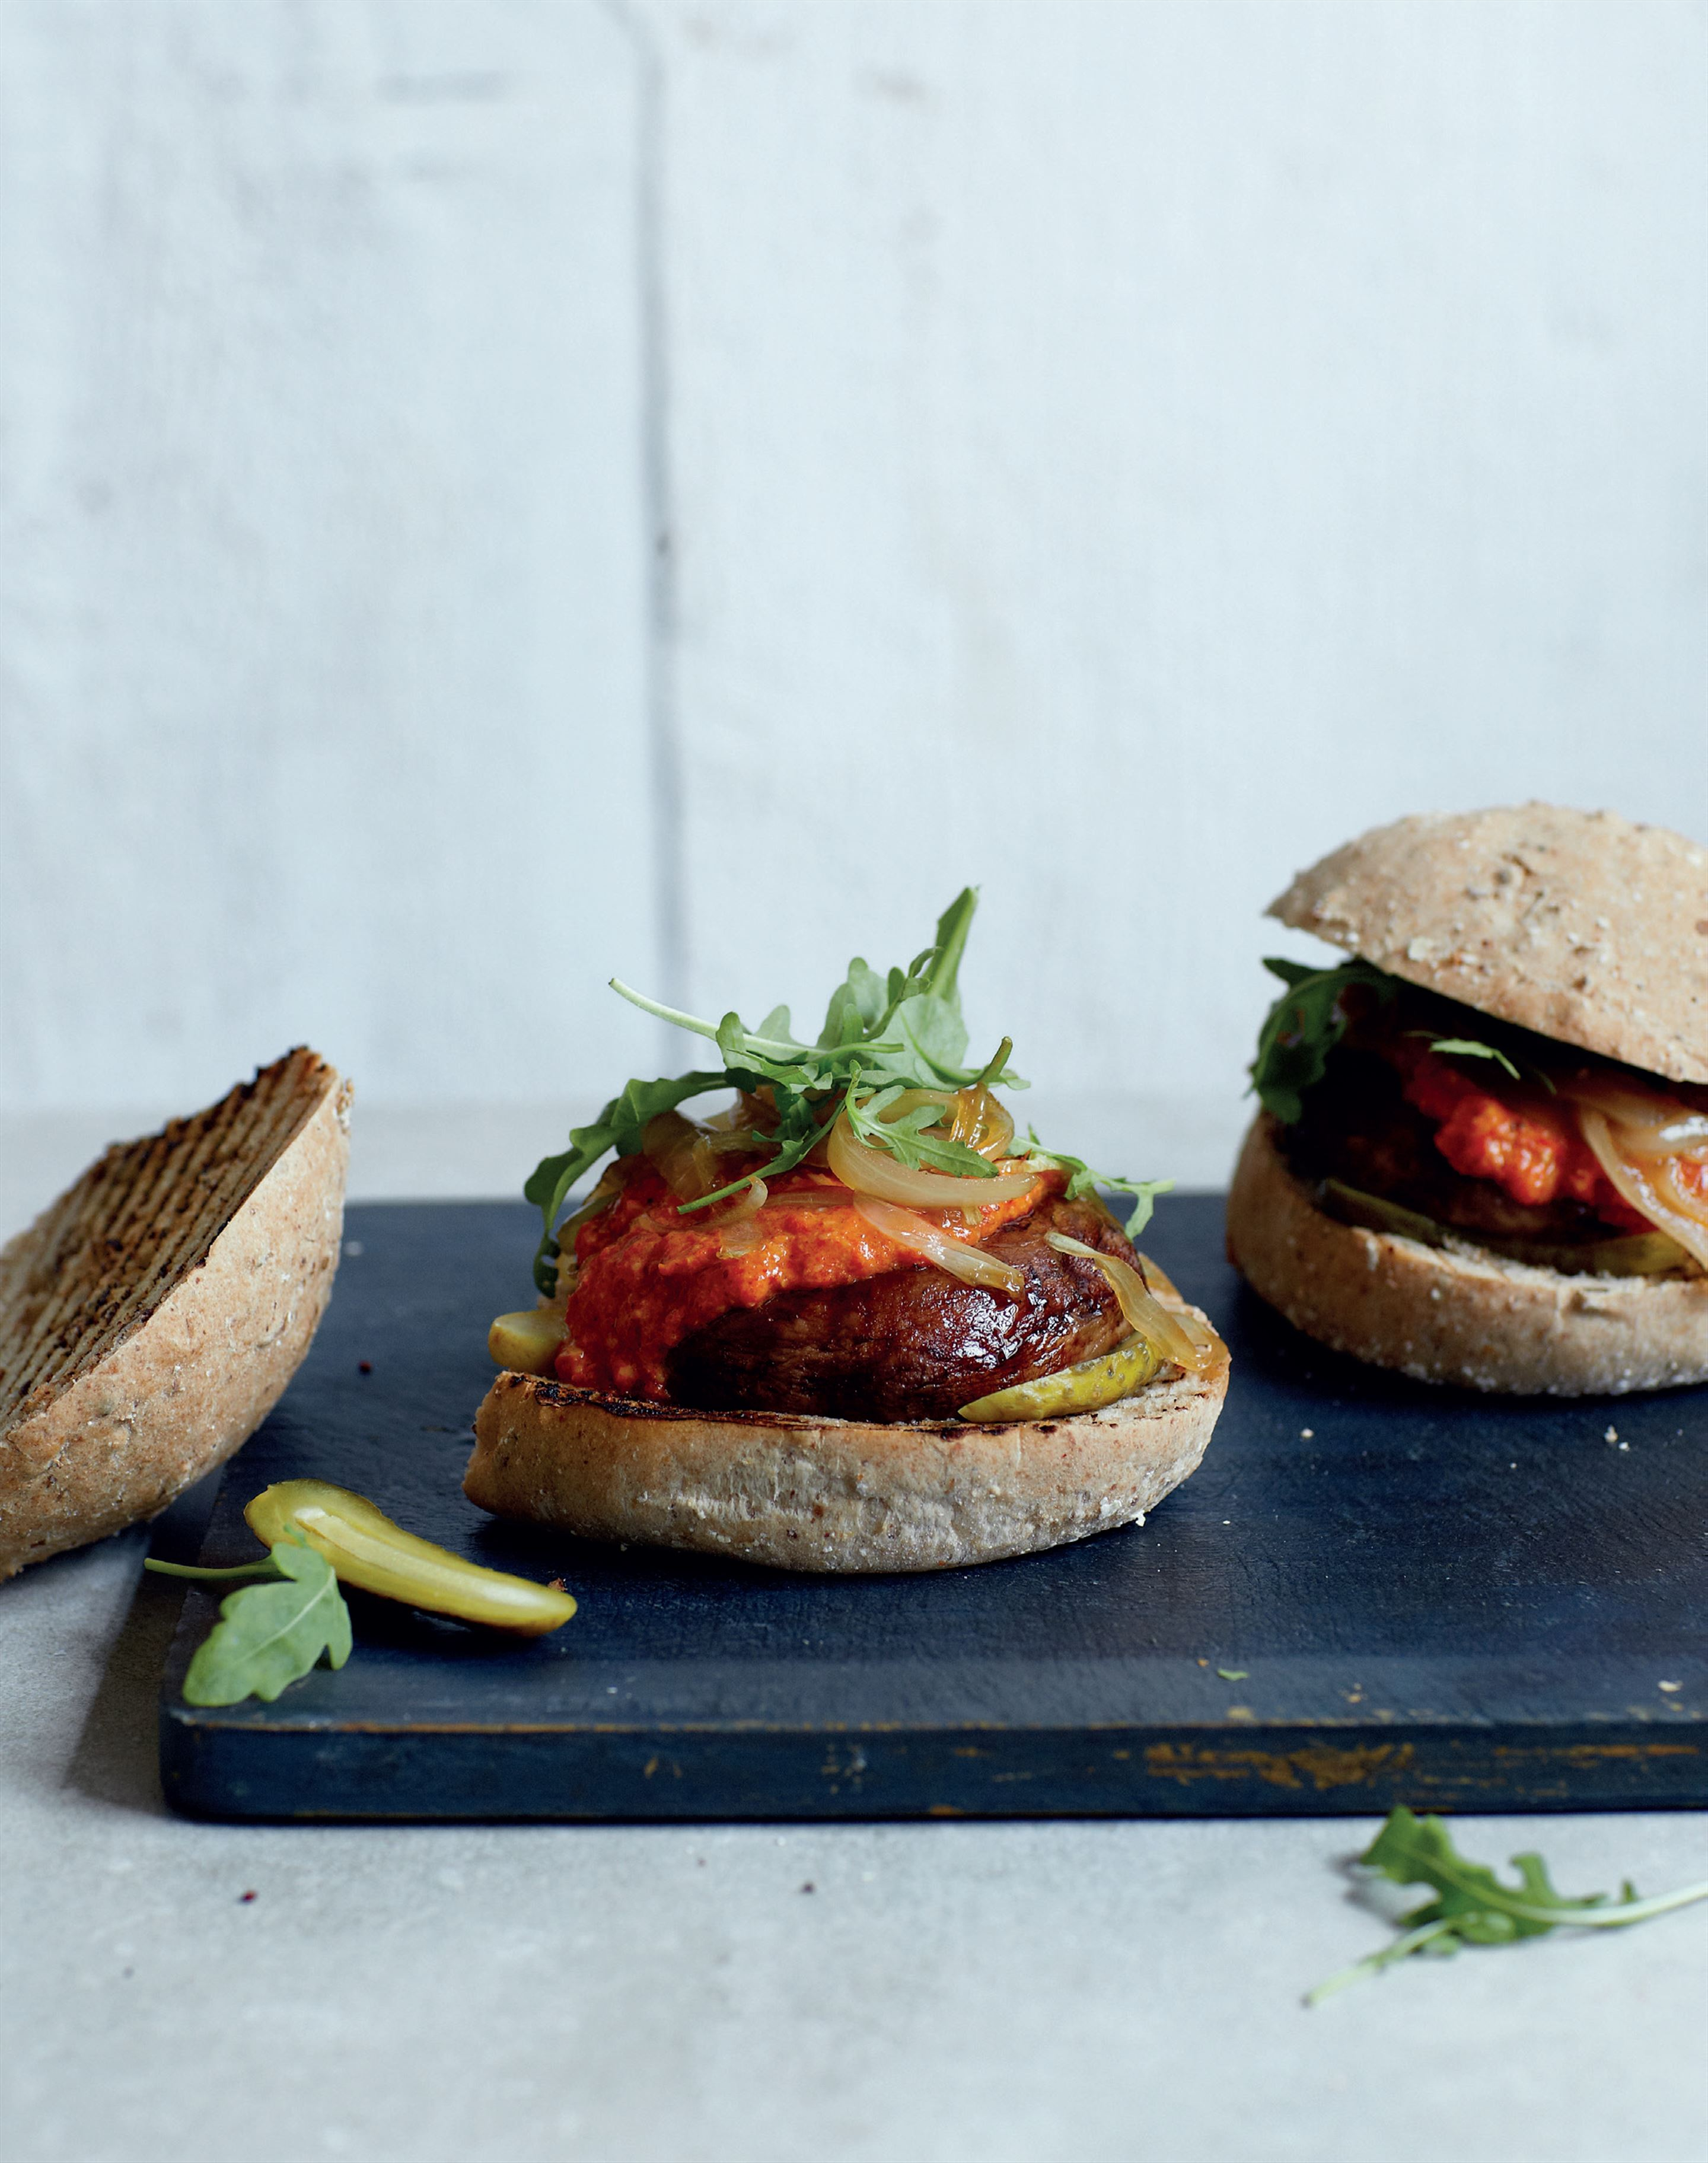 Portobello mushroom burger with red pepper sauce